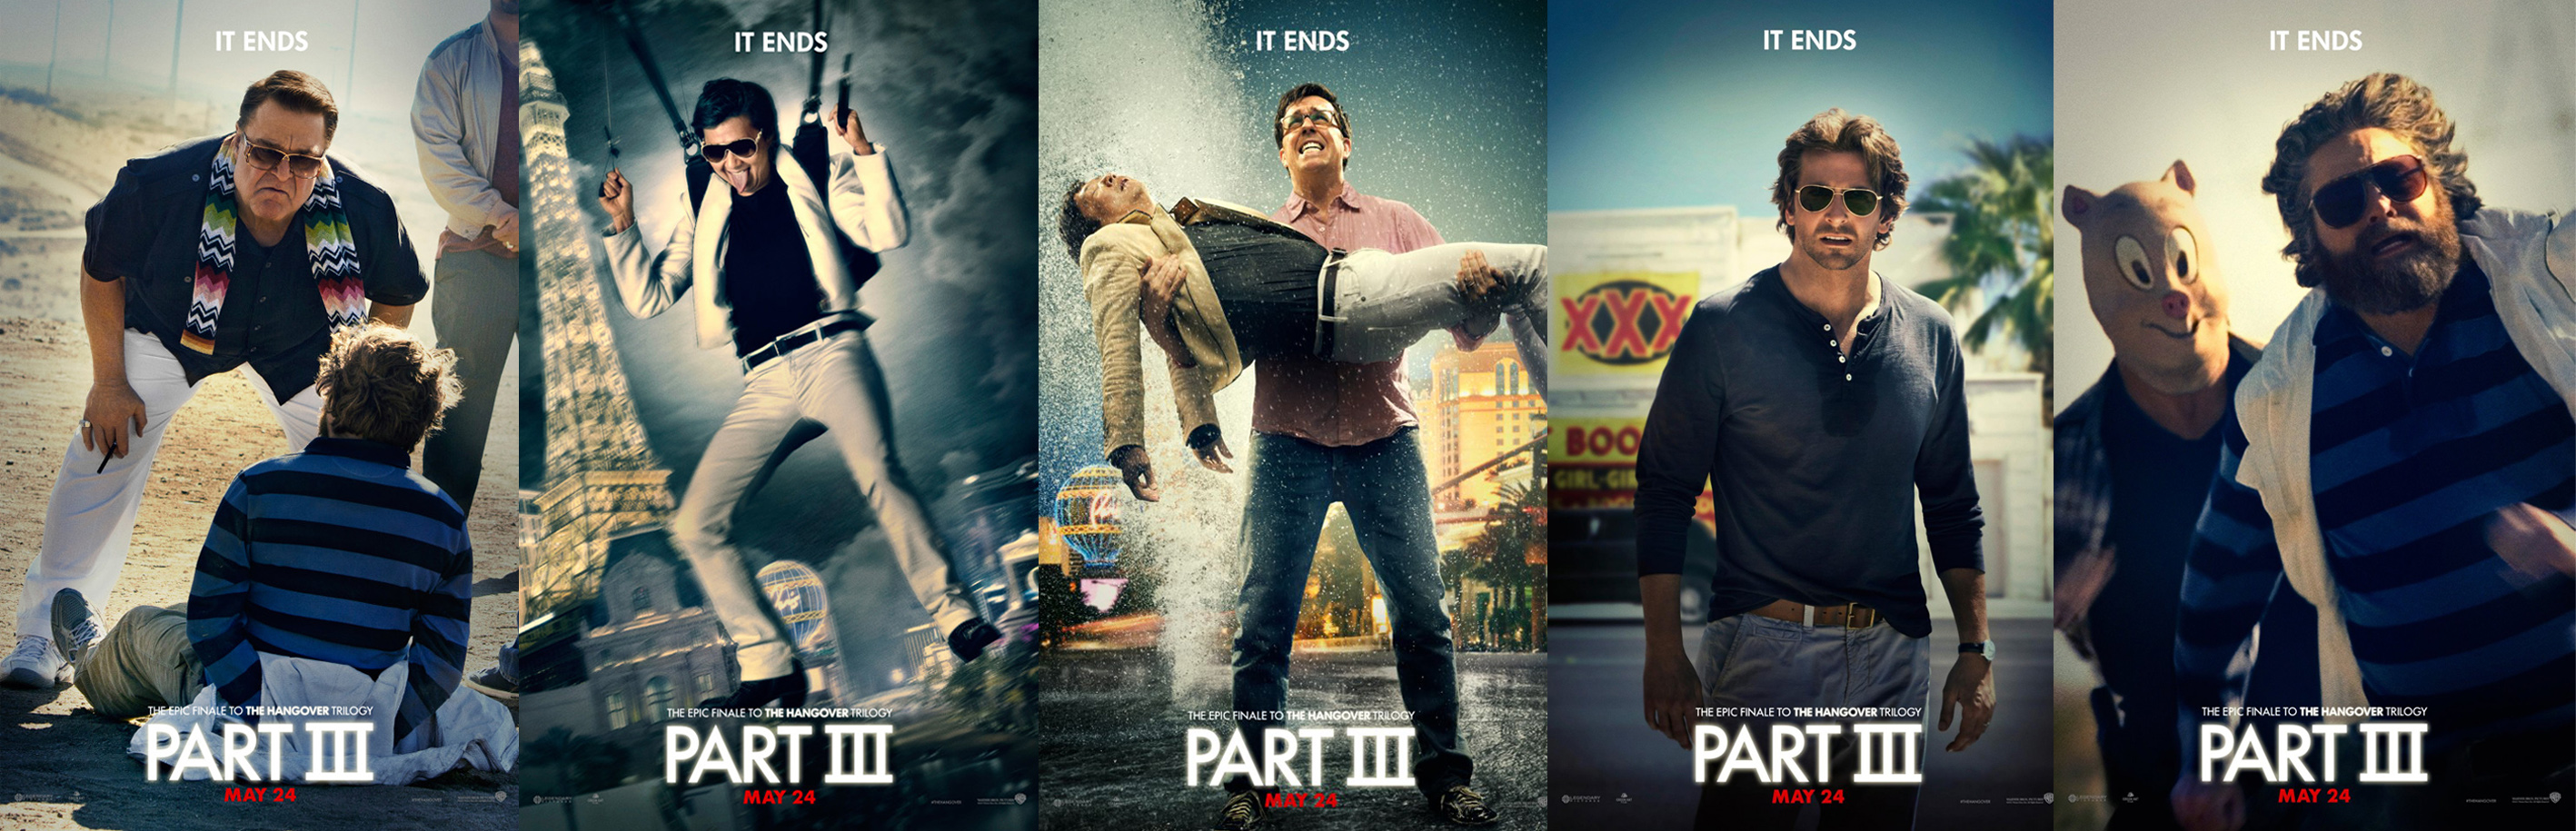 Hangover 3 posters copy